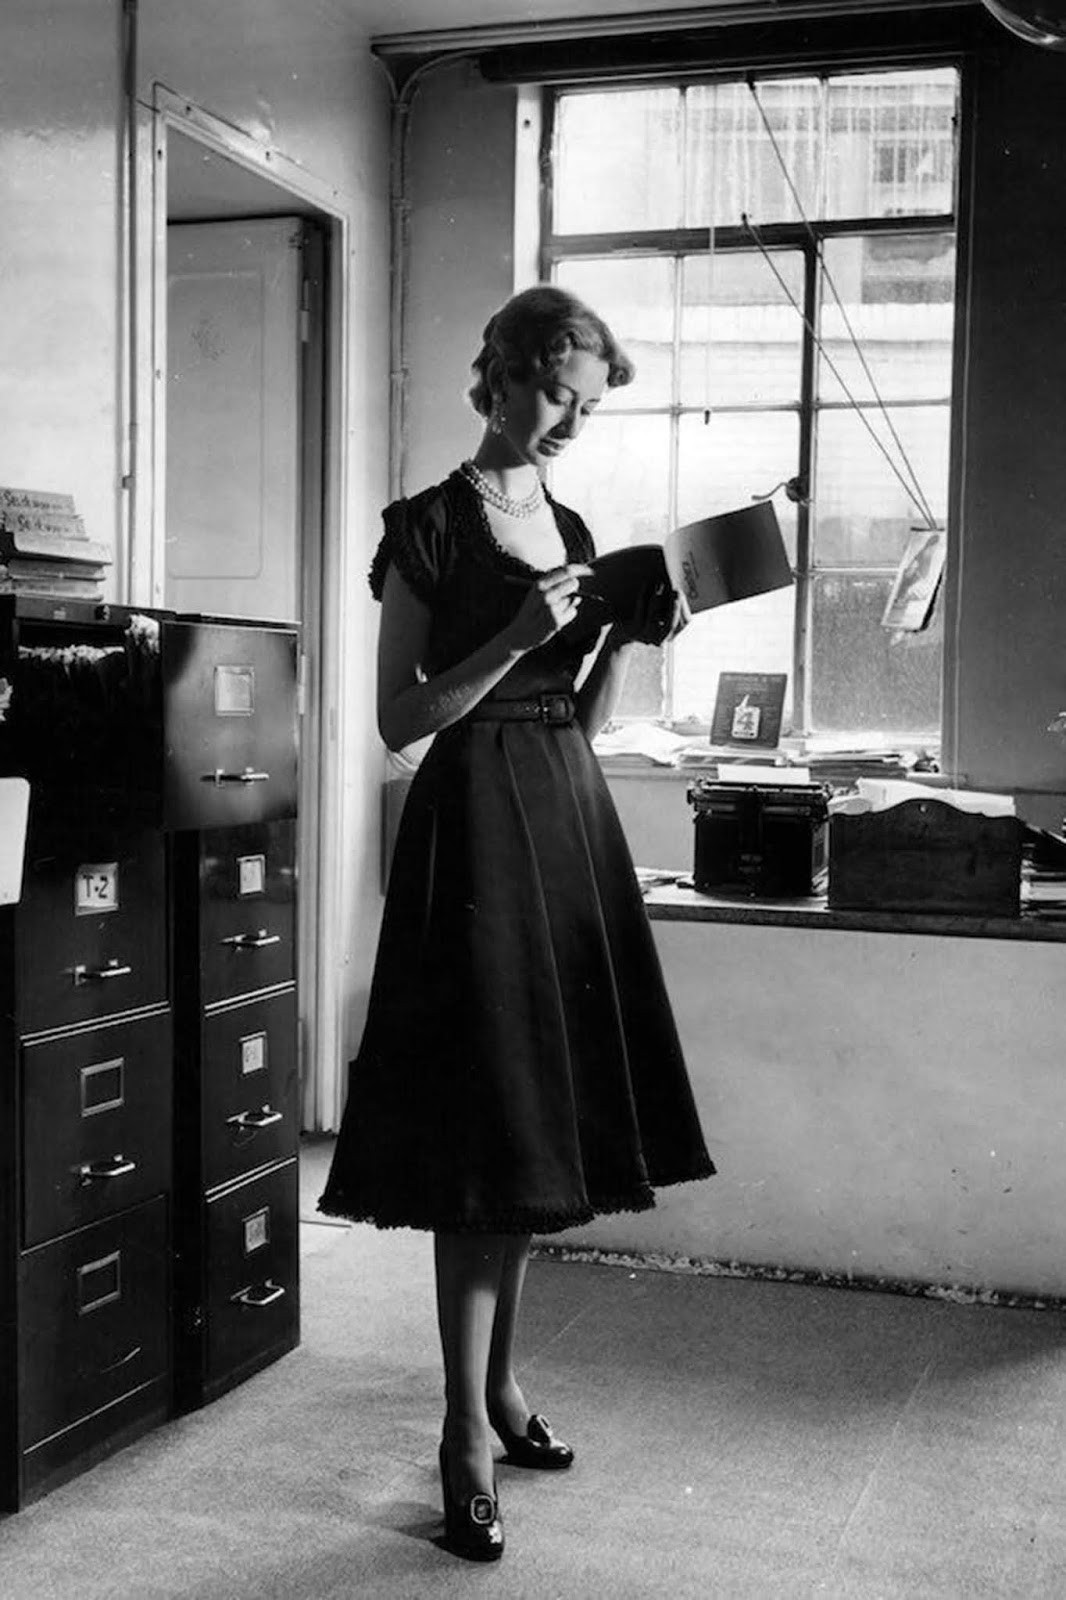 Published in 'Picture Post' with the original caption: 'A woman wearing a black satin dress by Brenner with baby lace around the sleeves, neck and hemline which is not really suitable for the office.' 1950.